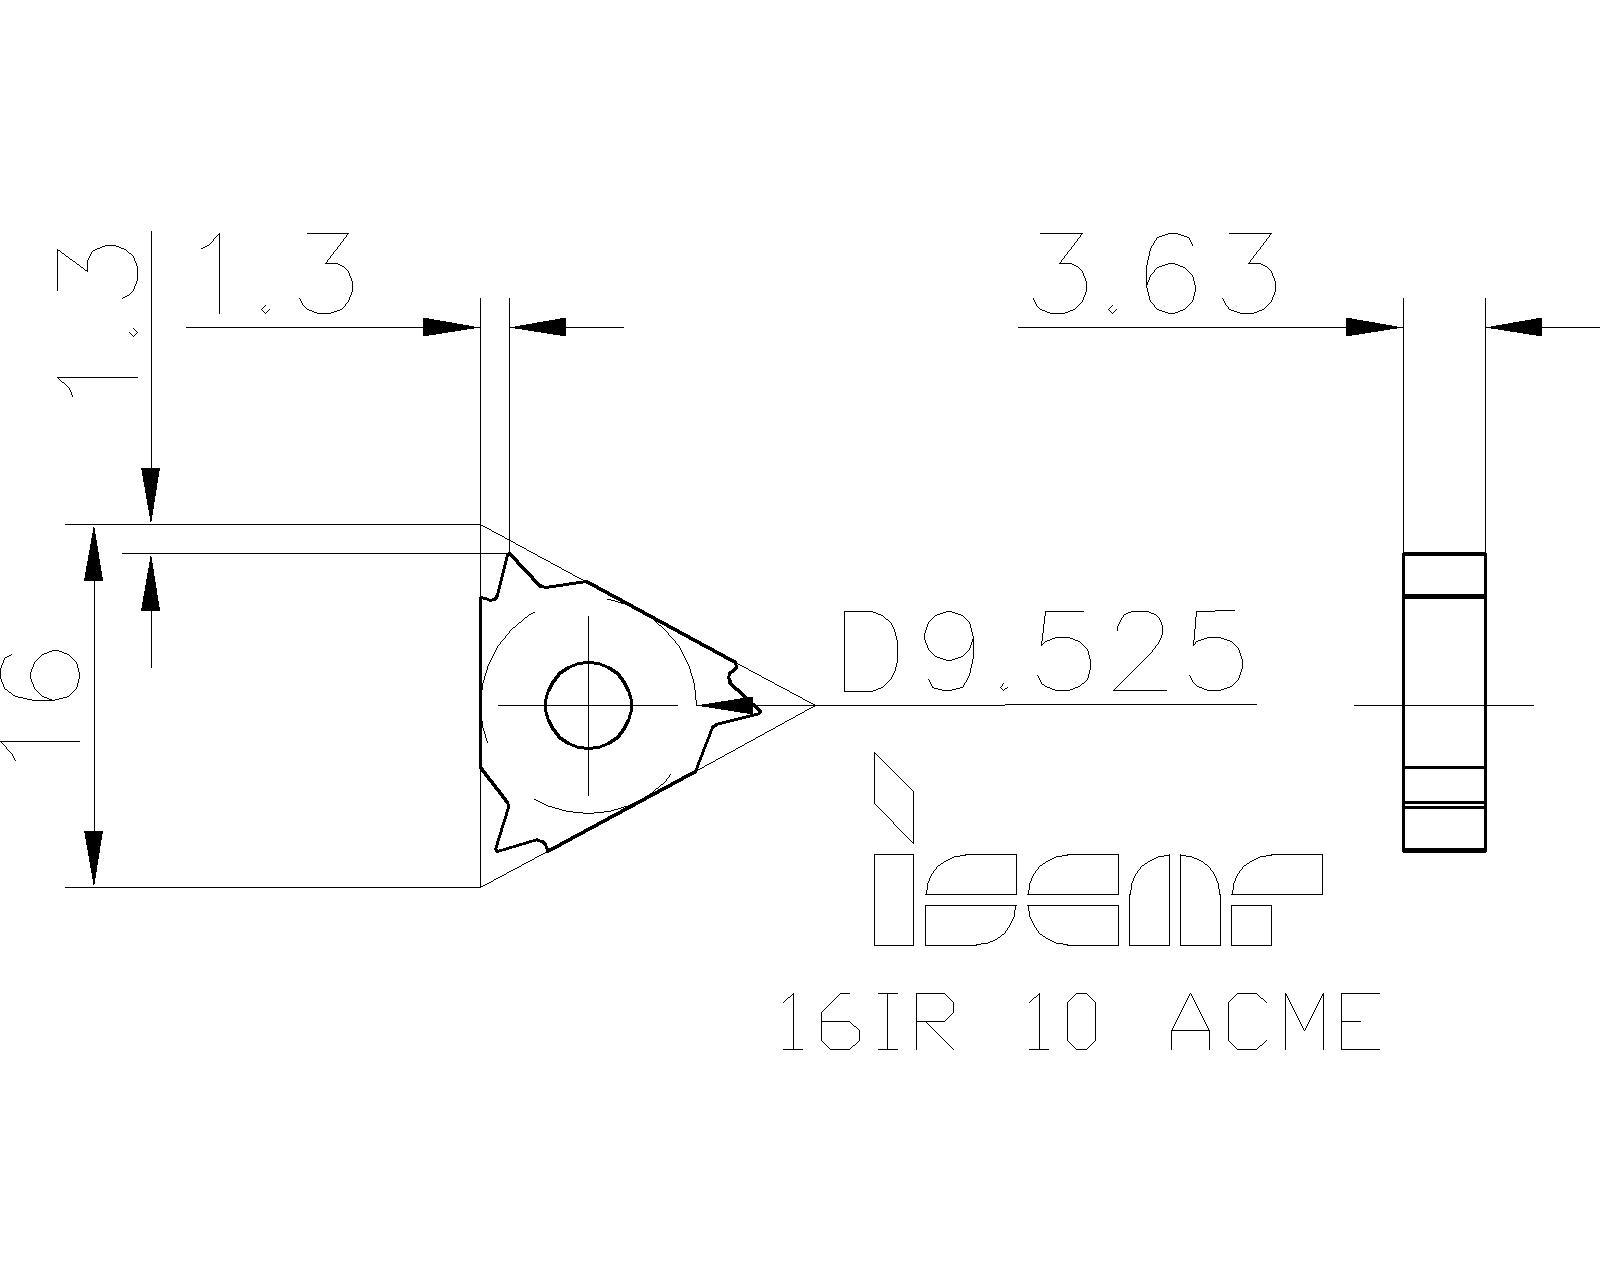 Length: 22mm Internal 22 IR6 ACME P25C Pitch: 6 TPI Pack of 5 inserts. ACME Threading Inserts I.C.: 1//2